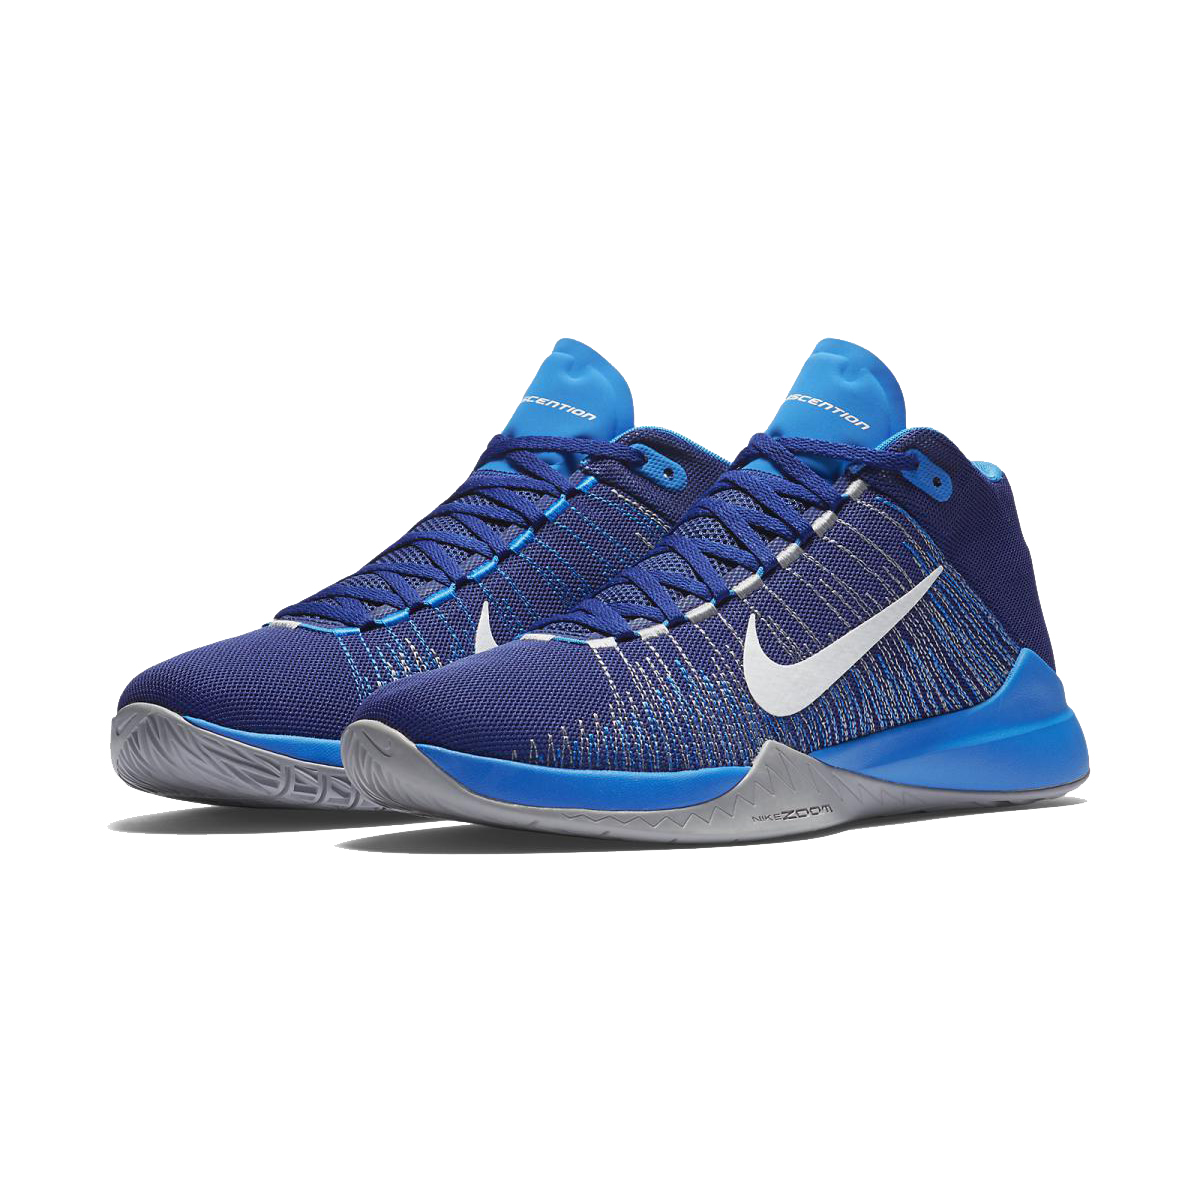 premium selection 92491 4f112 Nike Zoom Ascention